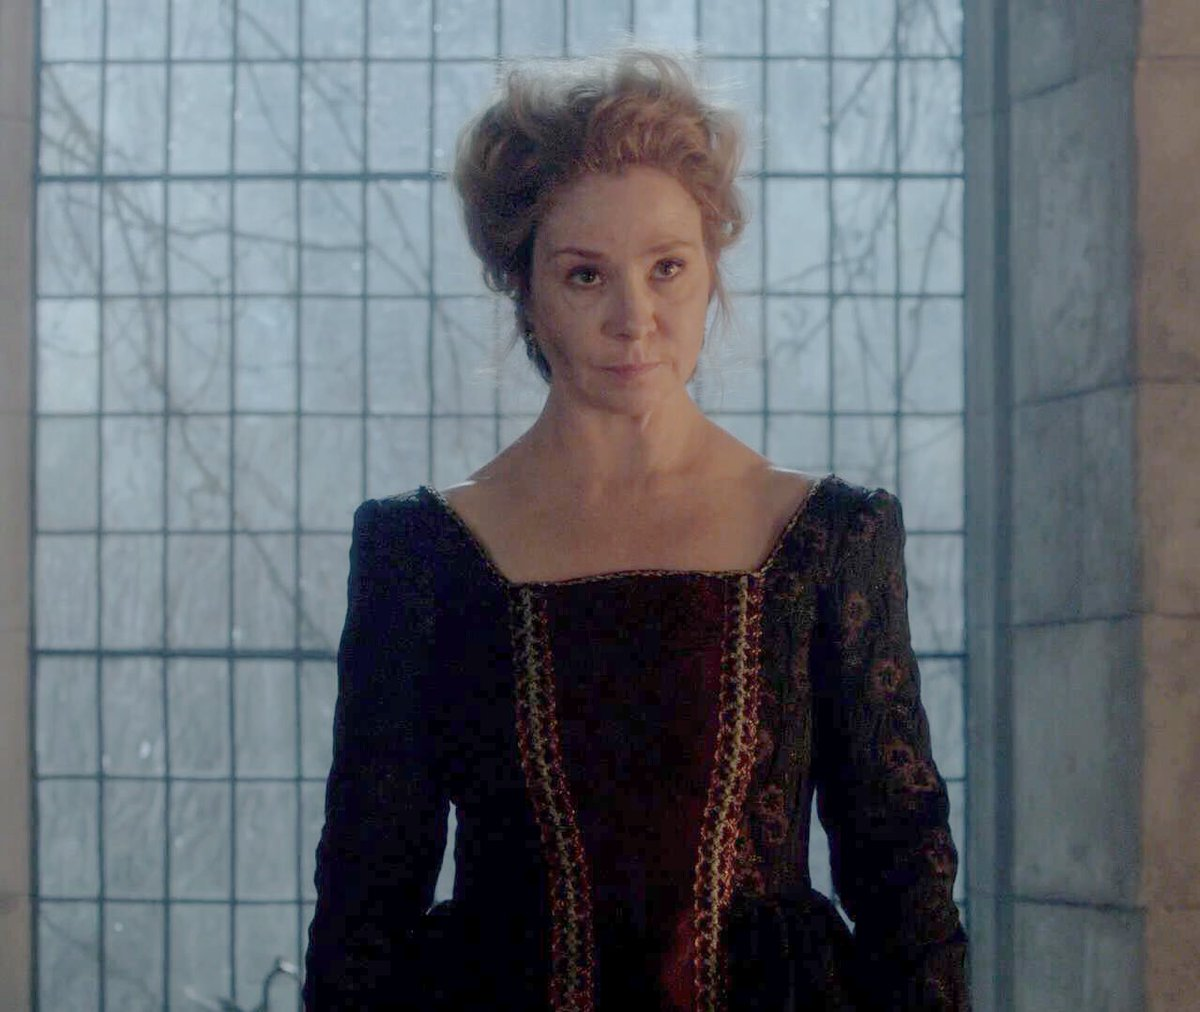 One  was enough to scare the shit out of that English man Catherine  #reign #queen #meganfollows <br>http://pic.twitter.com/XF60YUjBu9